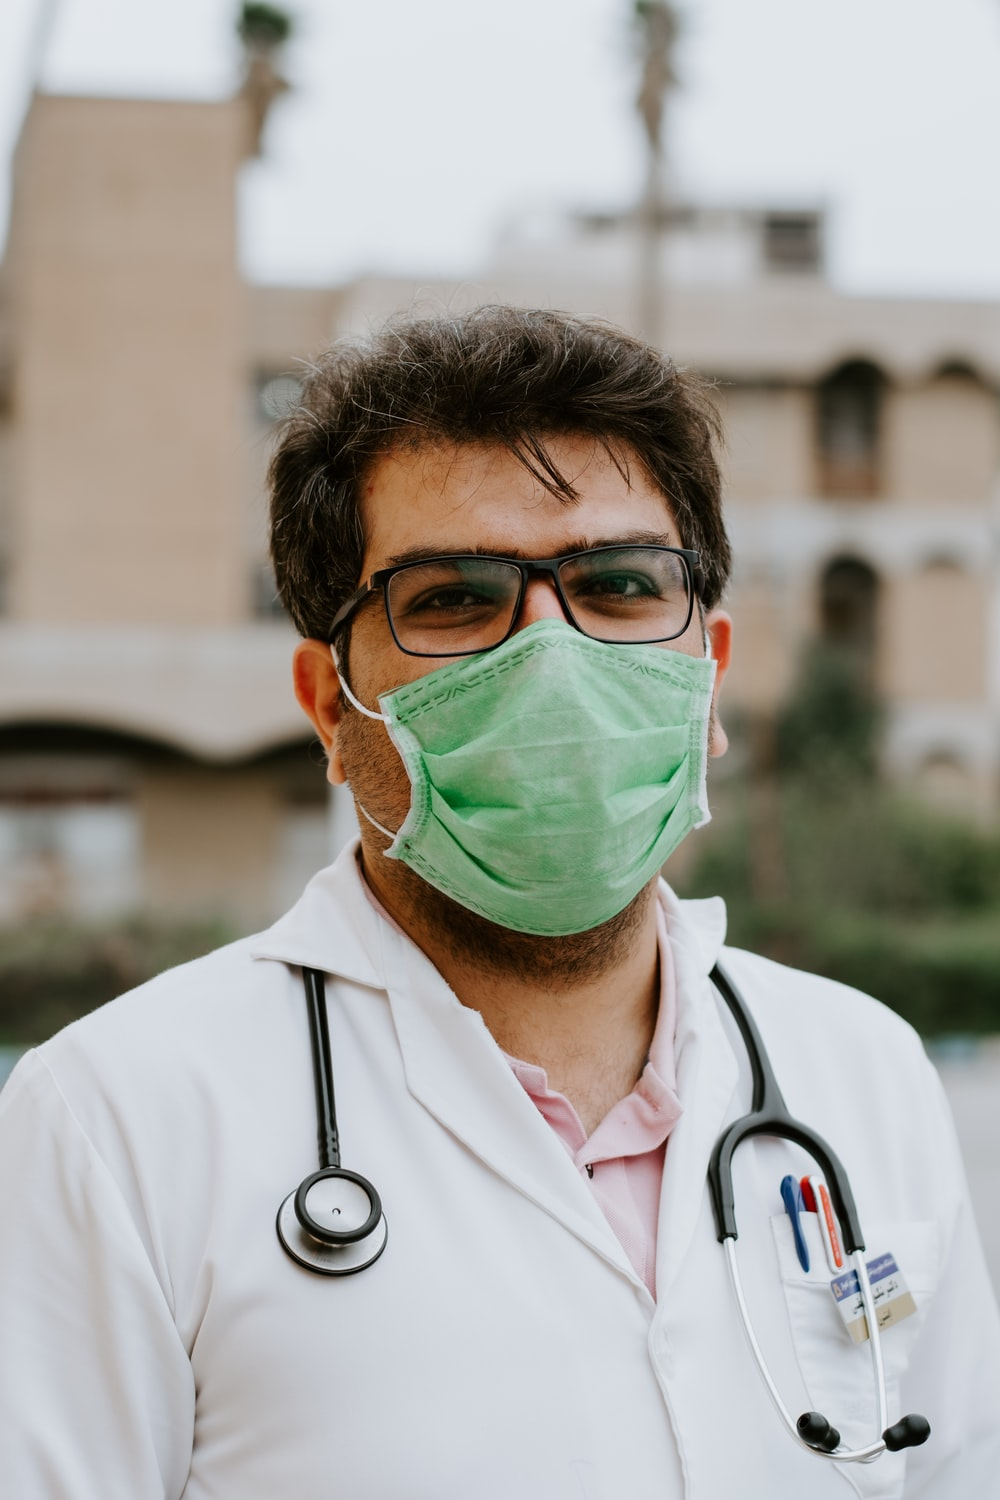 man in white scrub suit wearing green mask